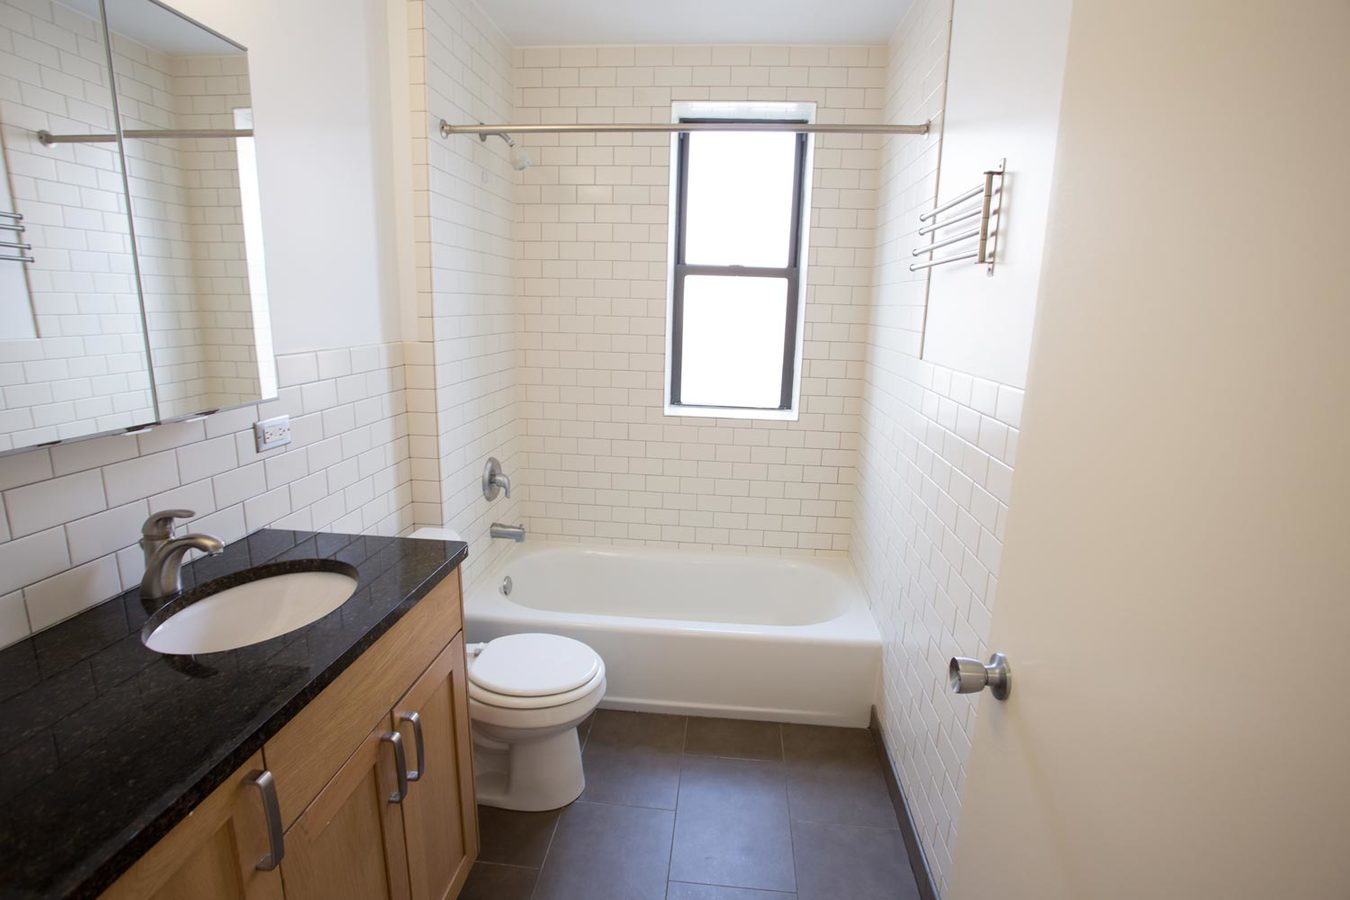 3 Bedrooms 1 Bathroom Apartment for rent at 5355-5361 S. Cottage Grove Avenue in Chicago, IL